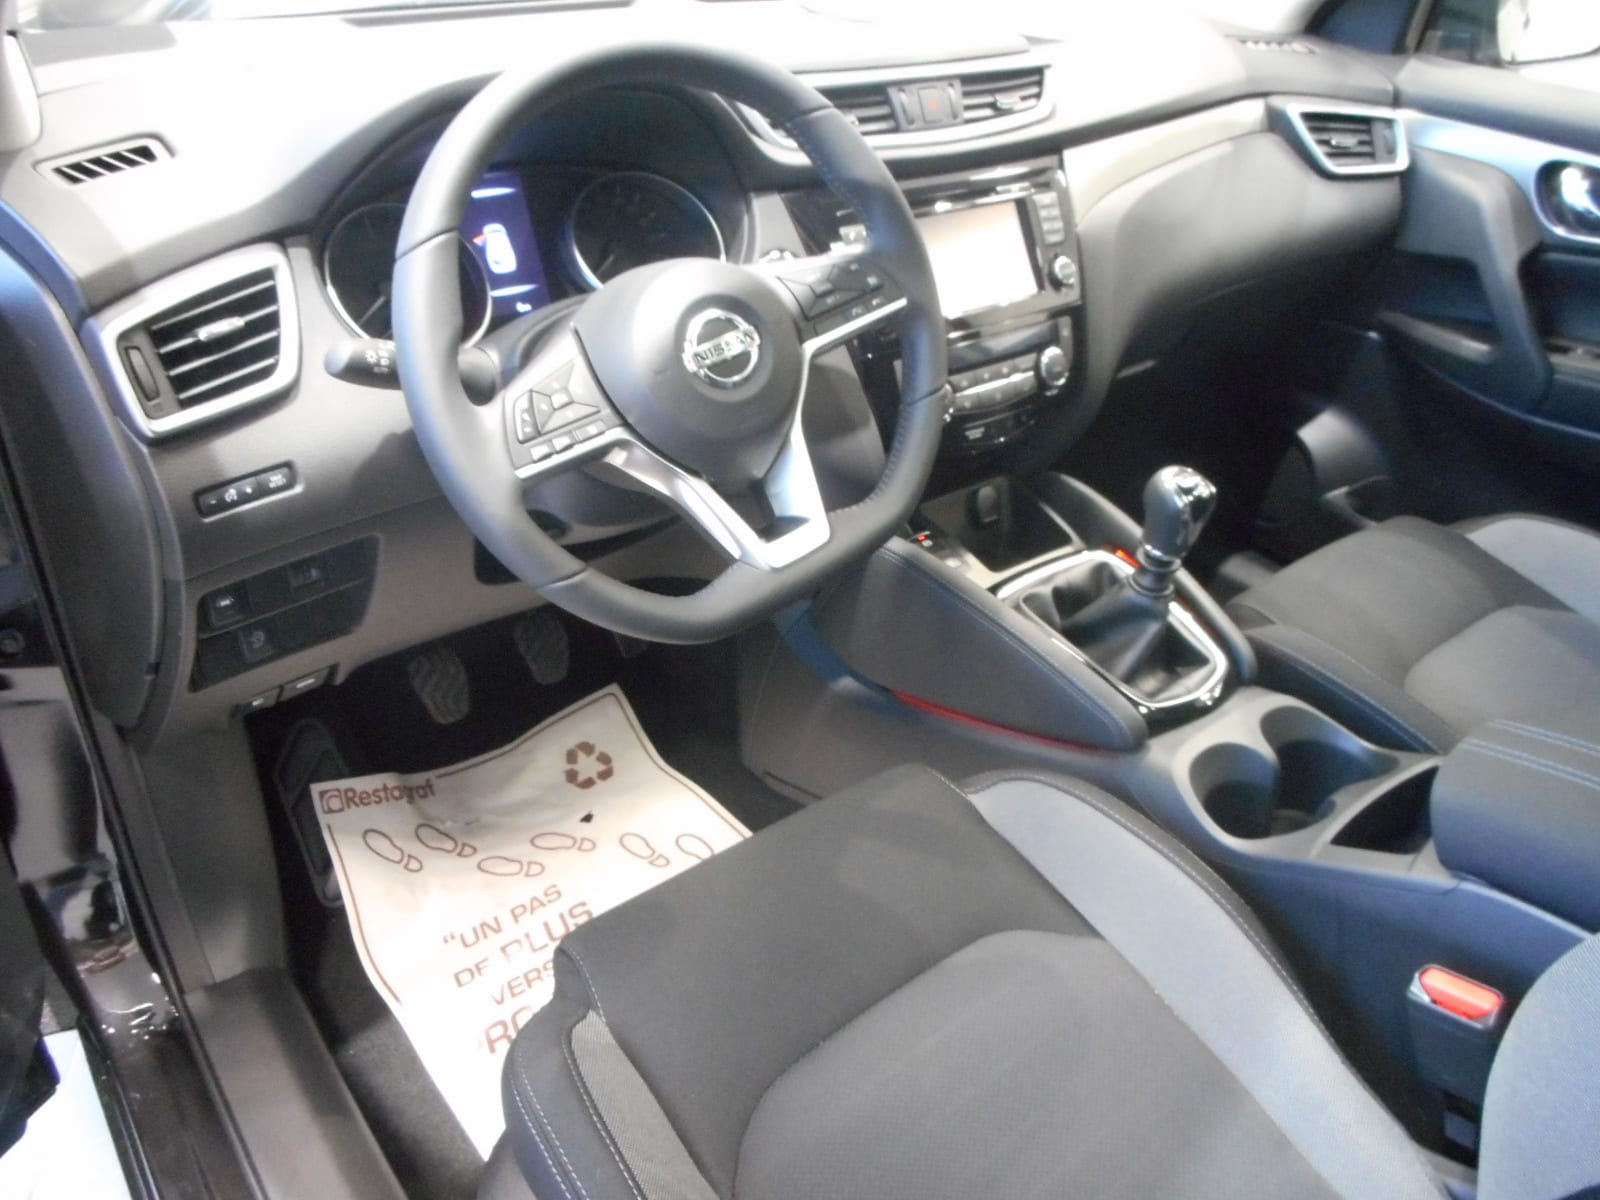 NISSAN QASHQAI 1.5 DCI 110 N CONNECTA PACK DESIGN - Image 4